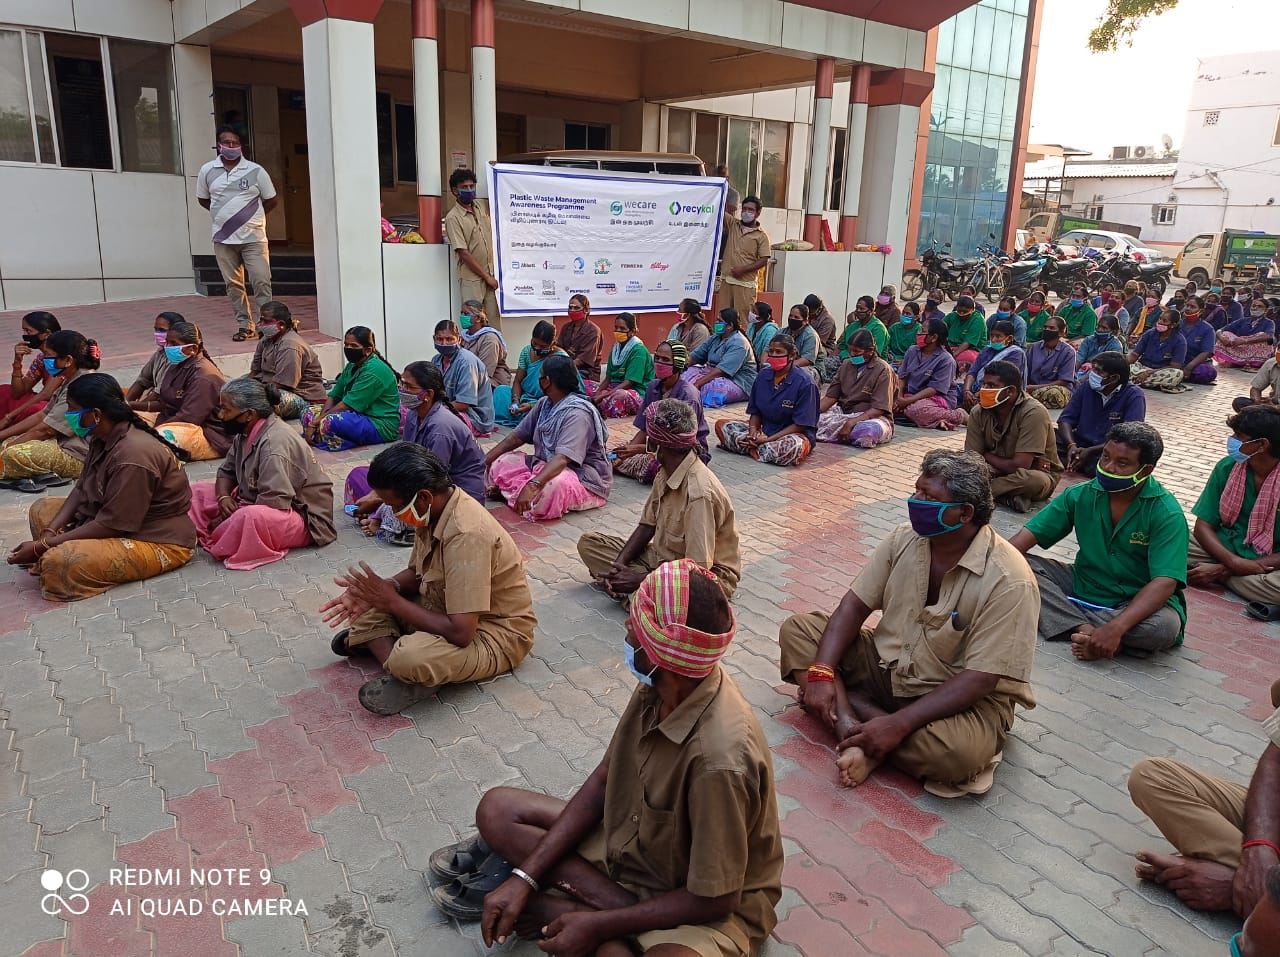 Awareness program by WeCare in association with Recykal at a DRCC in Tamil Nadu